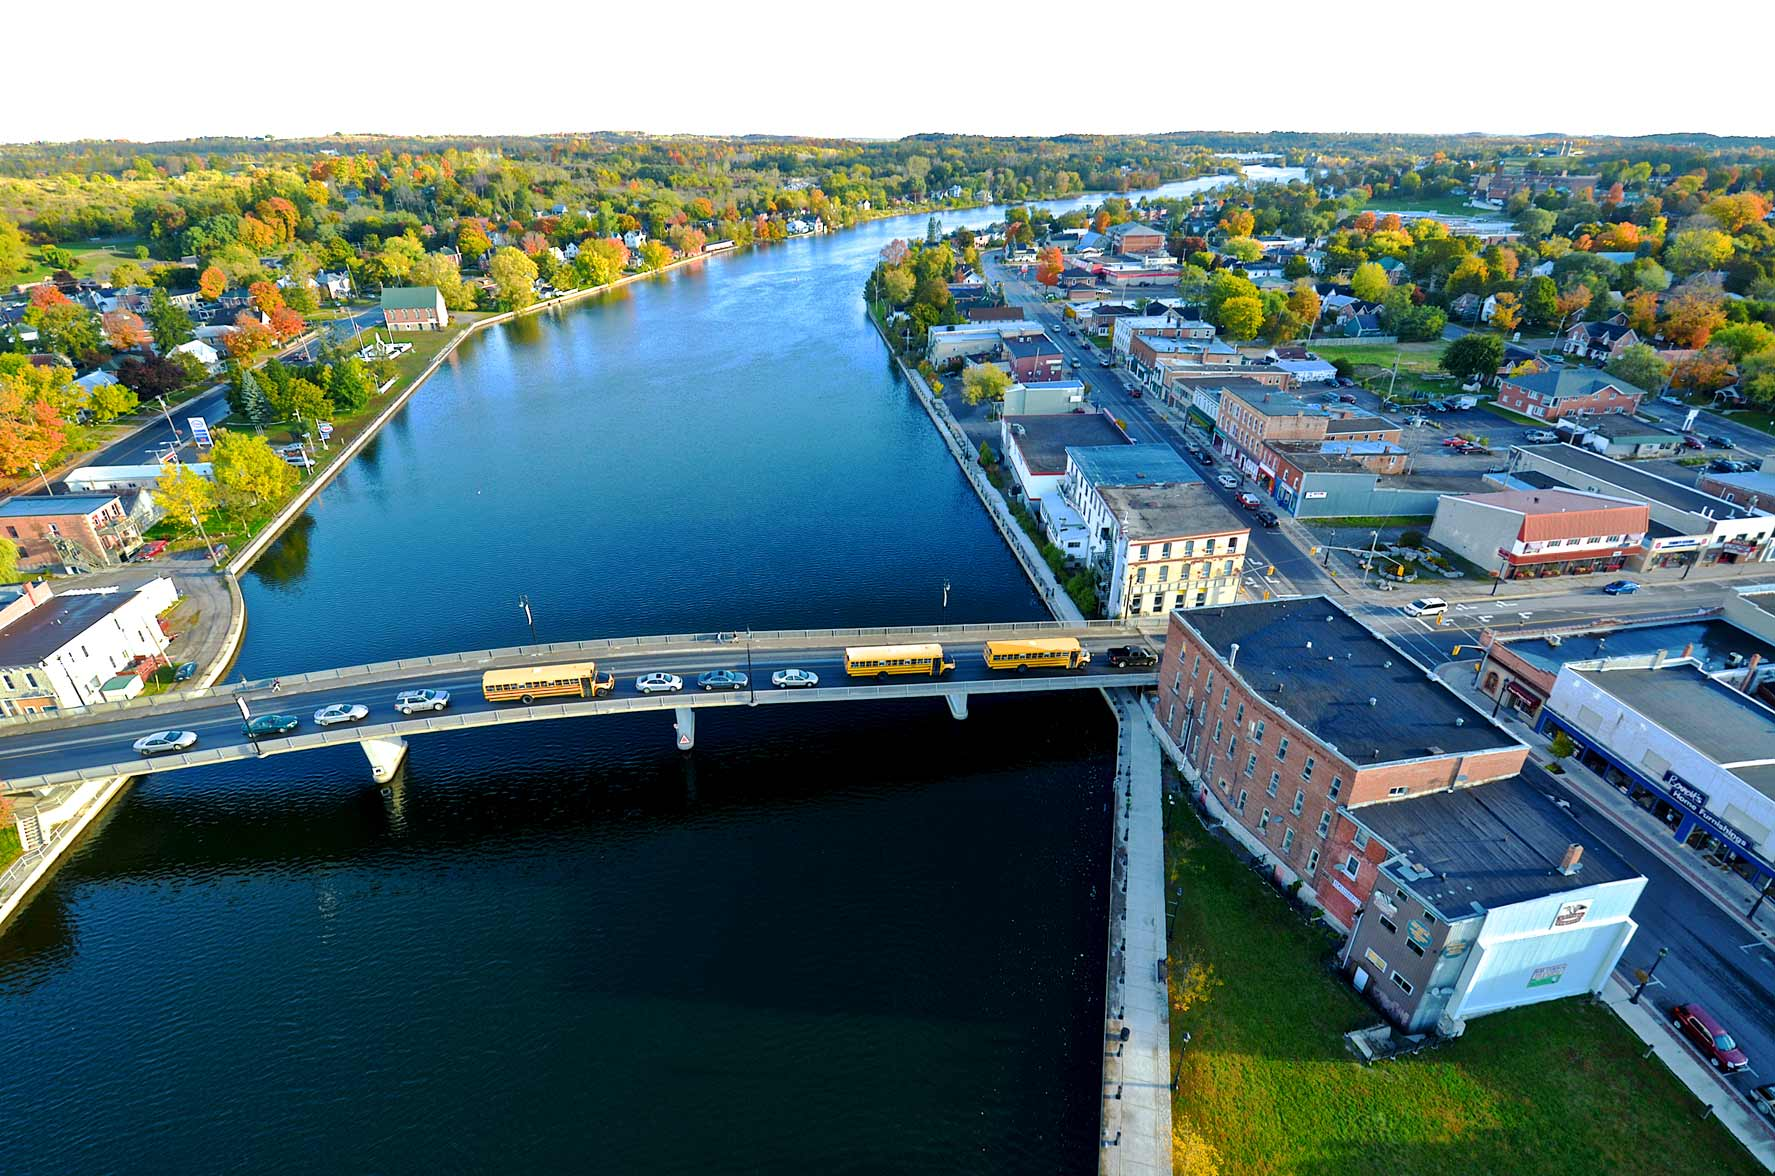 The Trent River in Campbellford